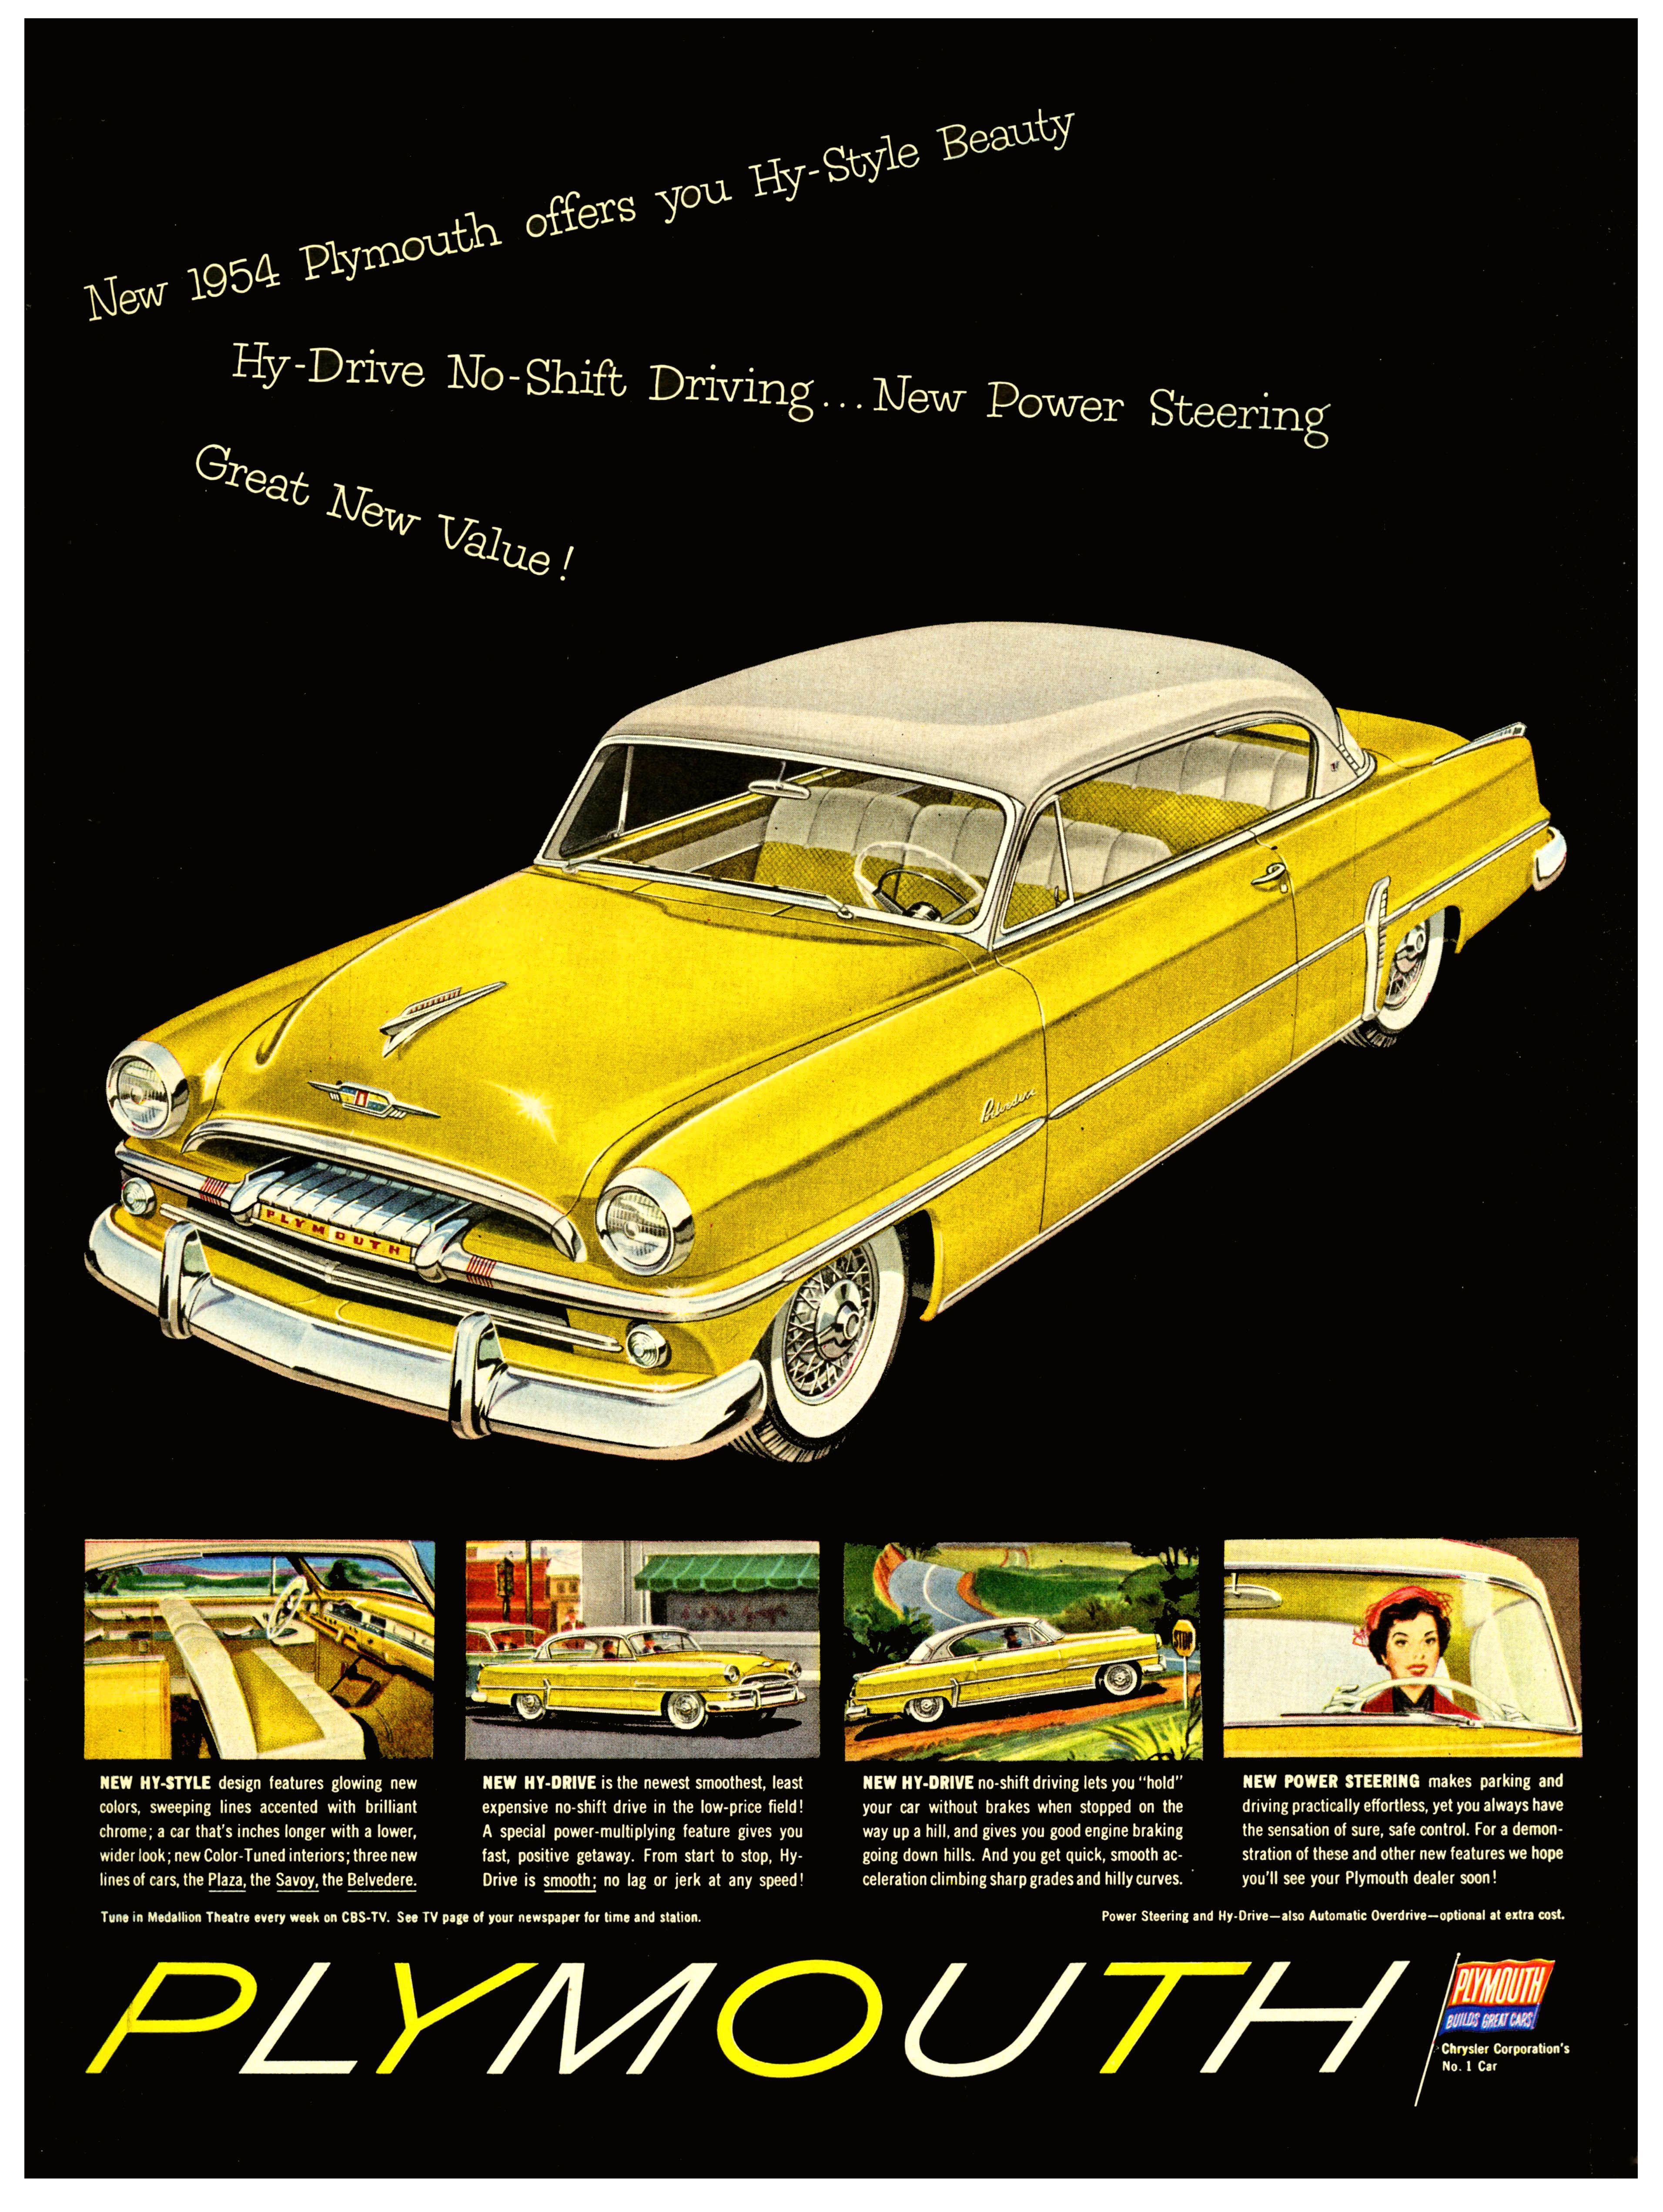 Pin by Chris G on Vintage Car Ads | Pinterest